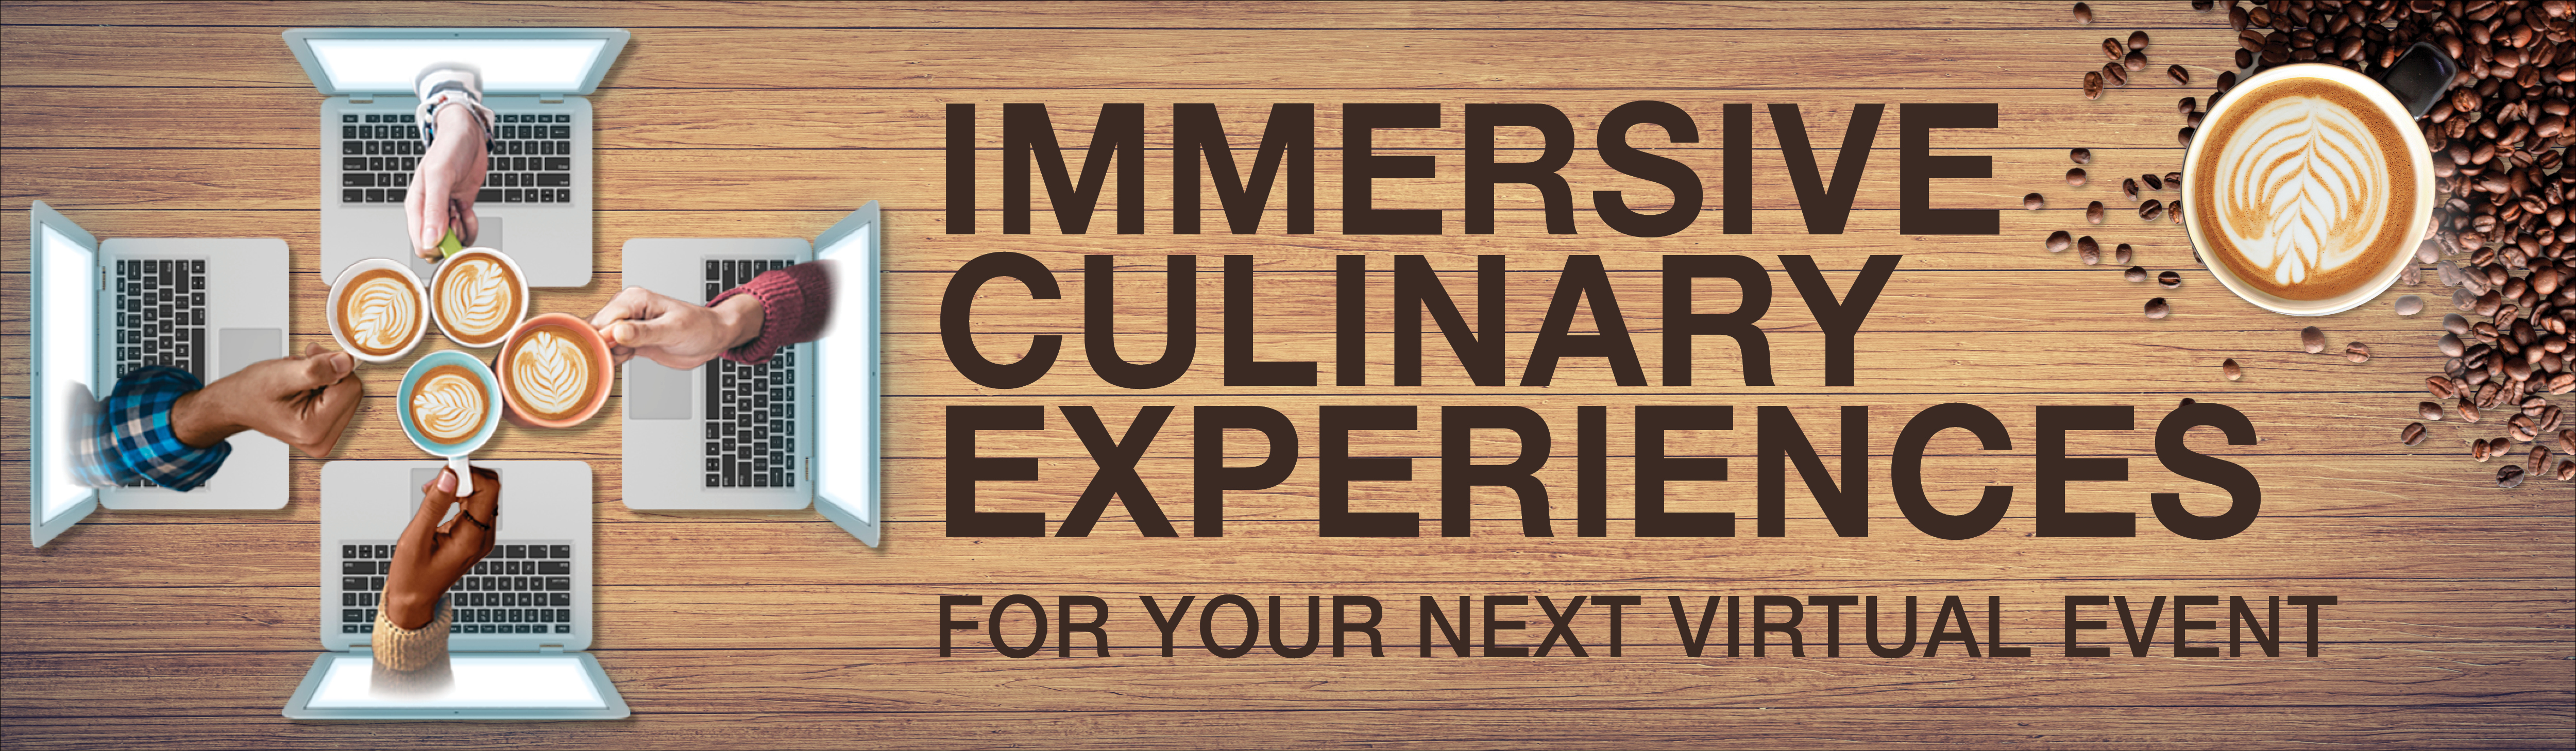 Immersive Culinary Experiences